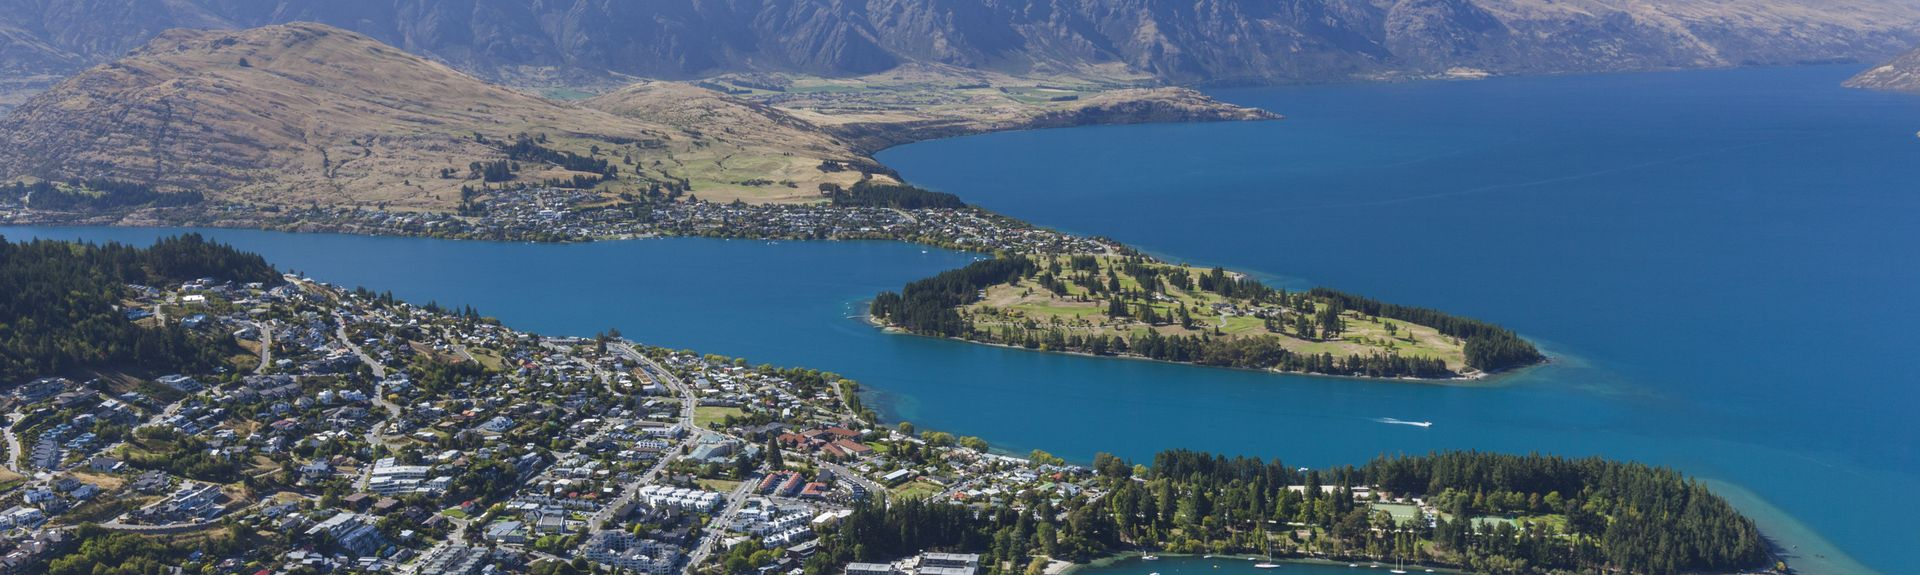 Queenstown, Queenstown Lakes, Otago, New Zealand